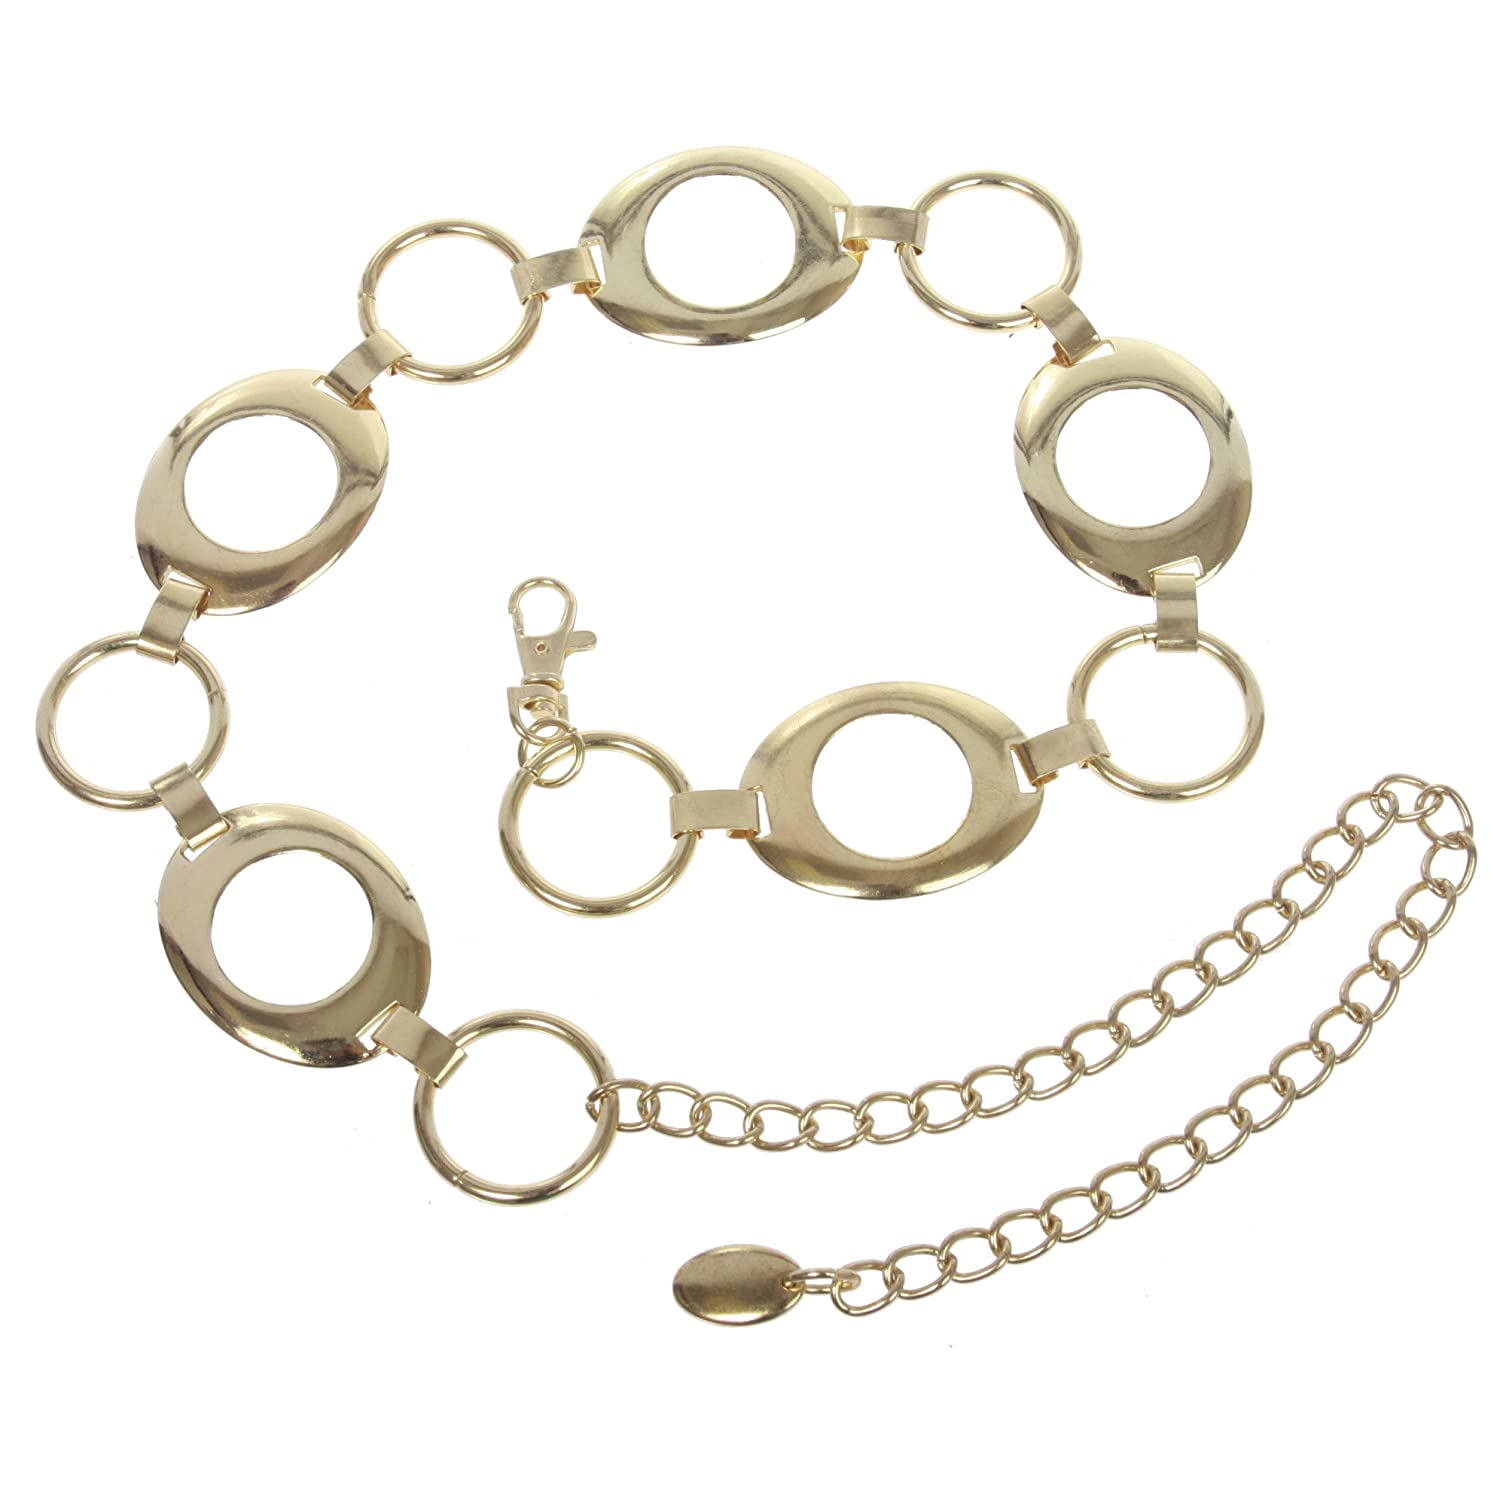 Women's Metal Oval Circle Chain Belt, Gold | O/S - 39 End To End Beltiscool WY7112:011X:A002